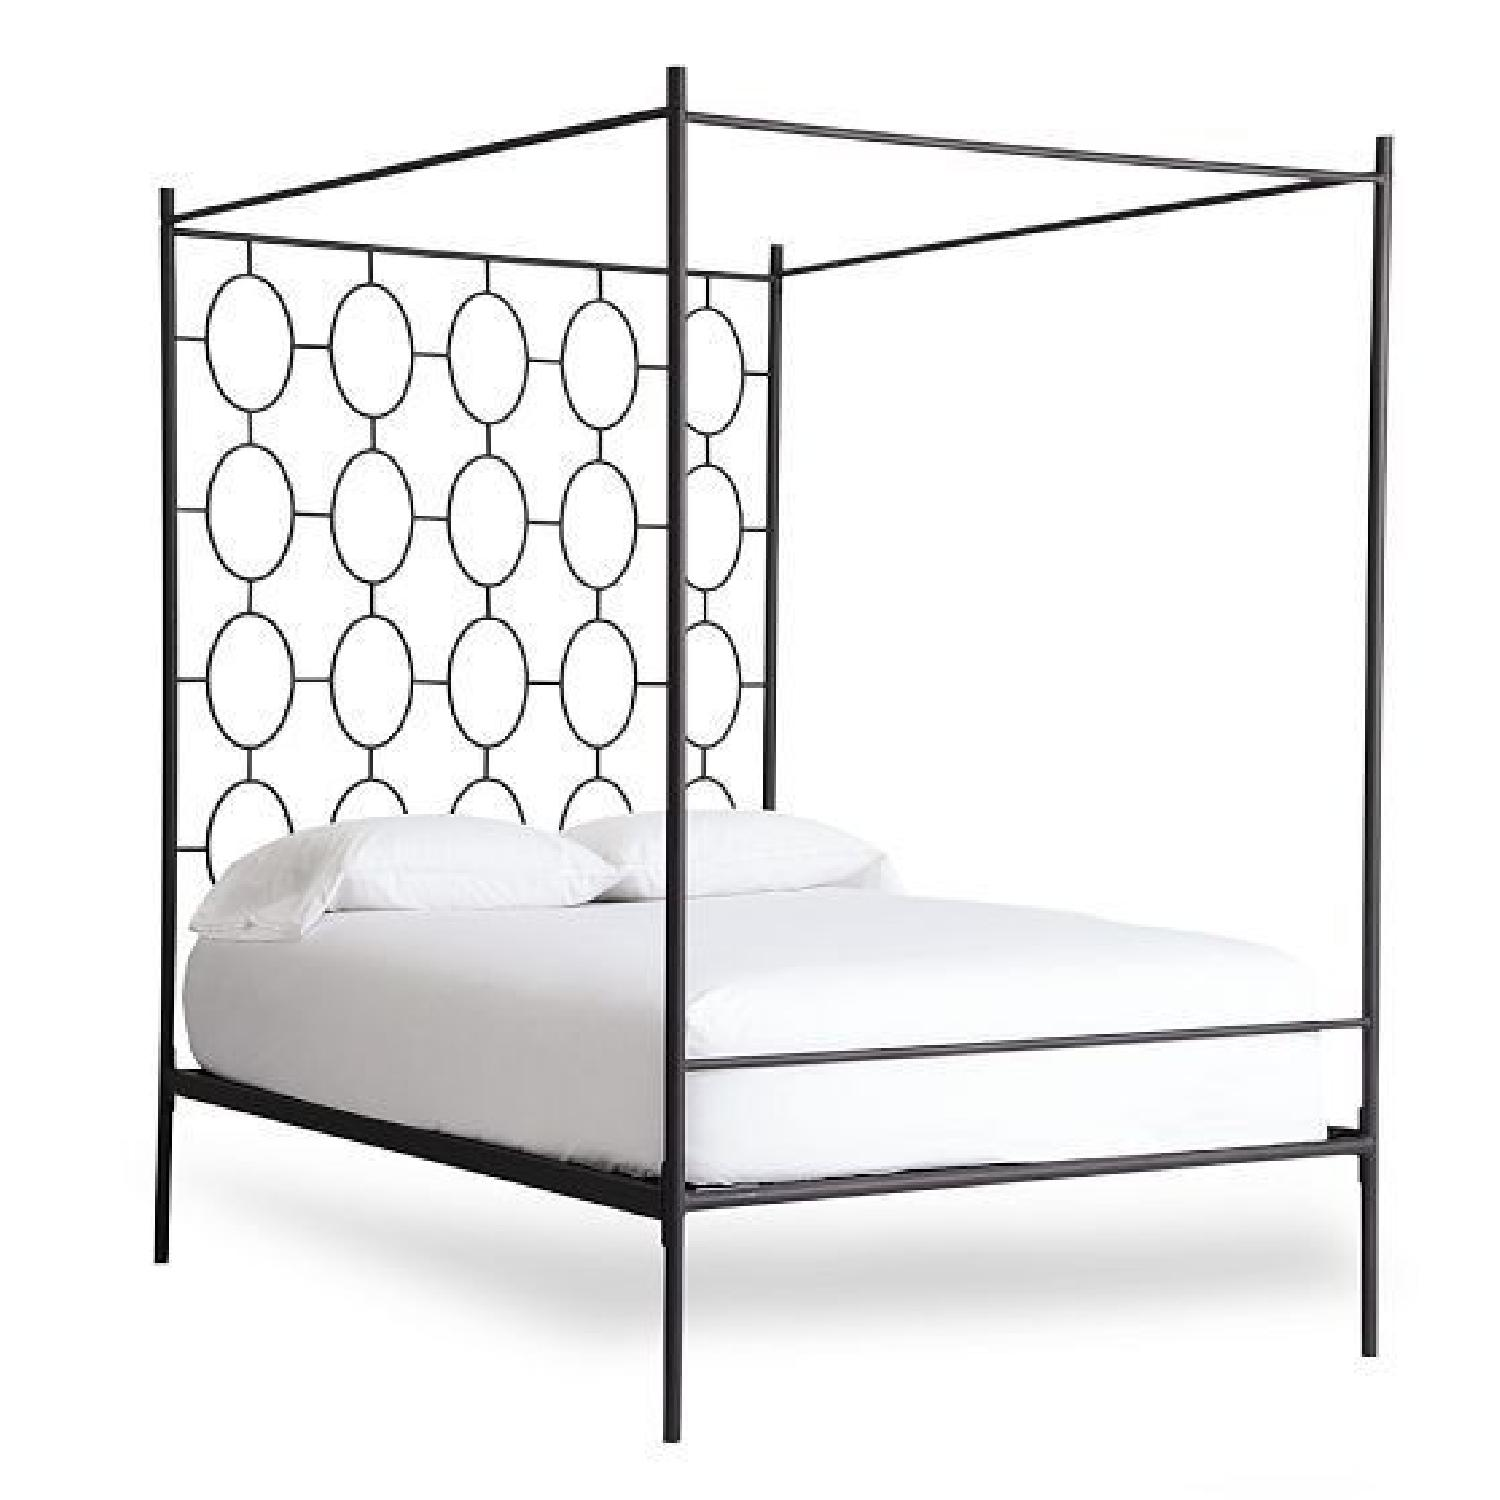 West Elm Ellipse Metal Canopy Bed Frame w/ Headboard